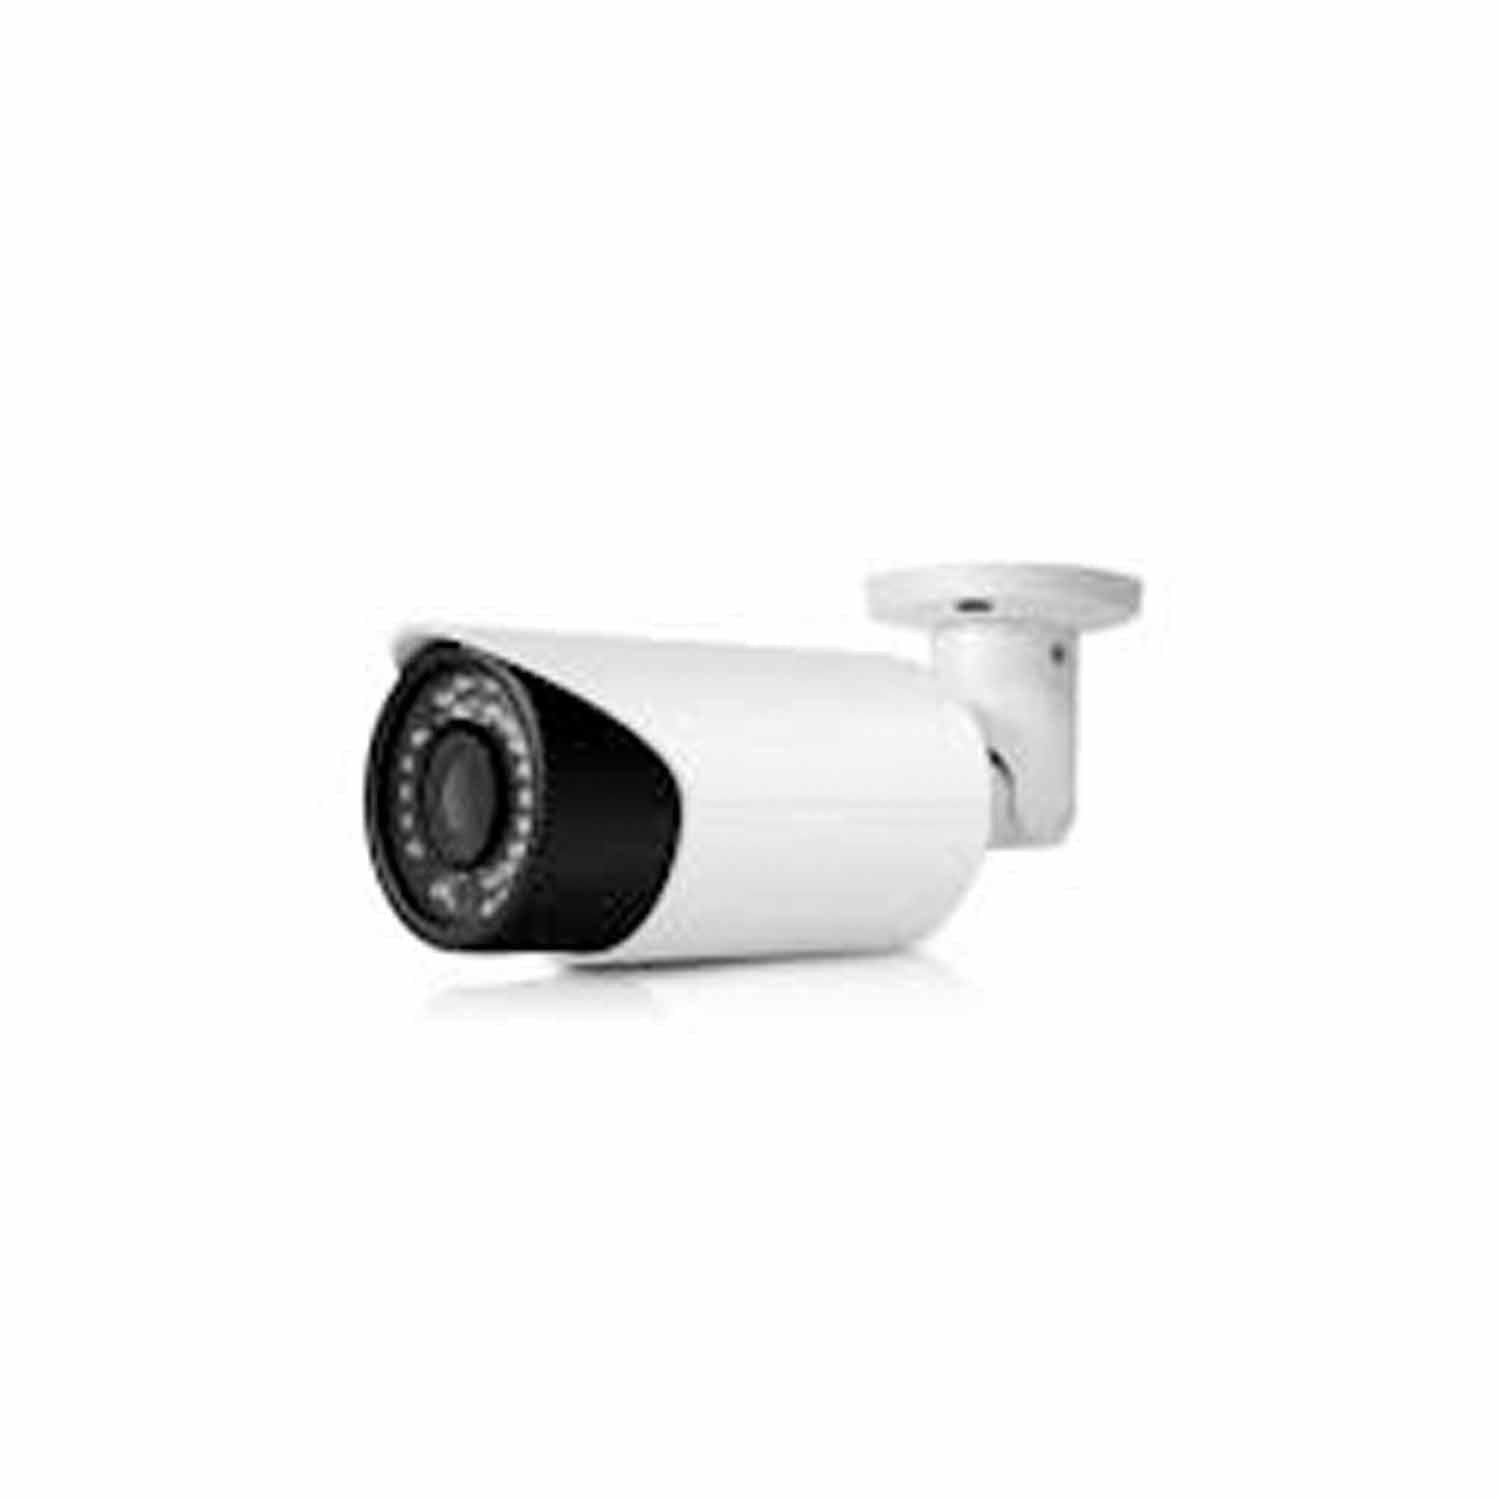 Intelligent IT&T-3324 Analog Dome Camera White